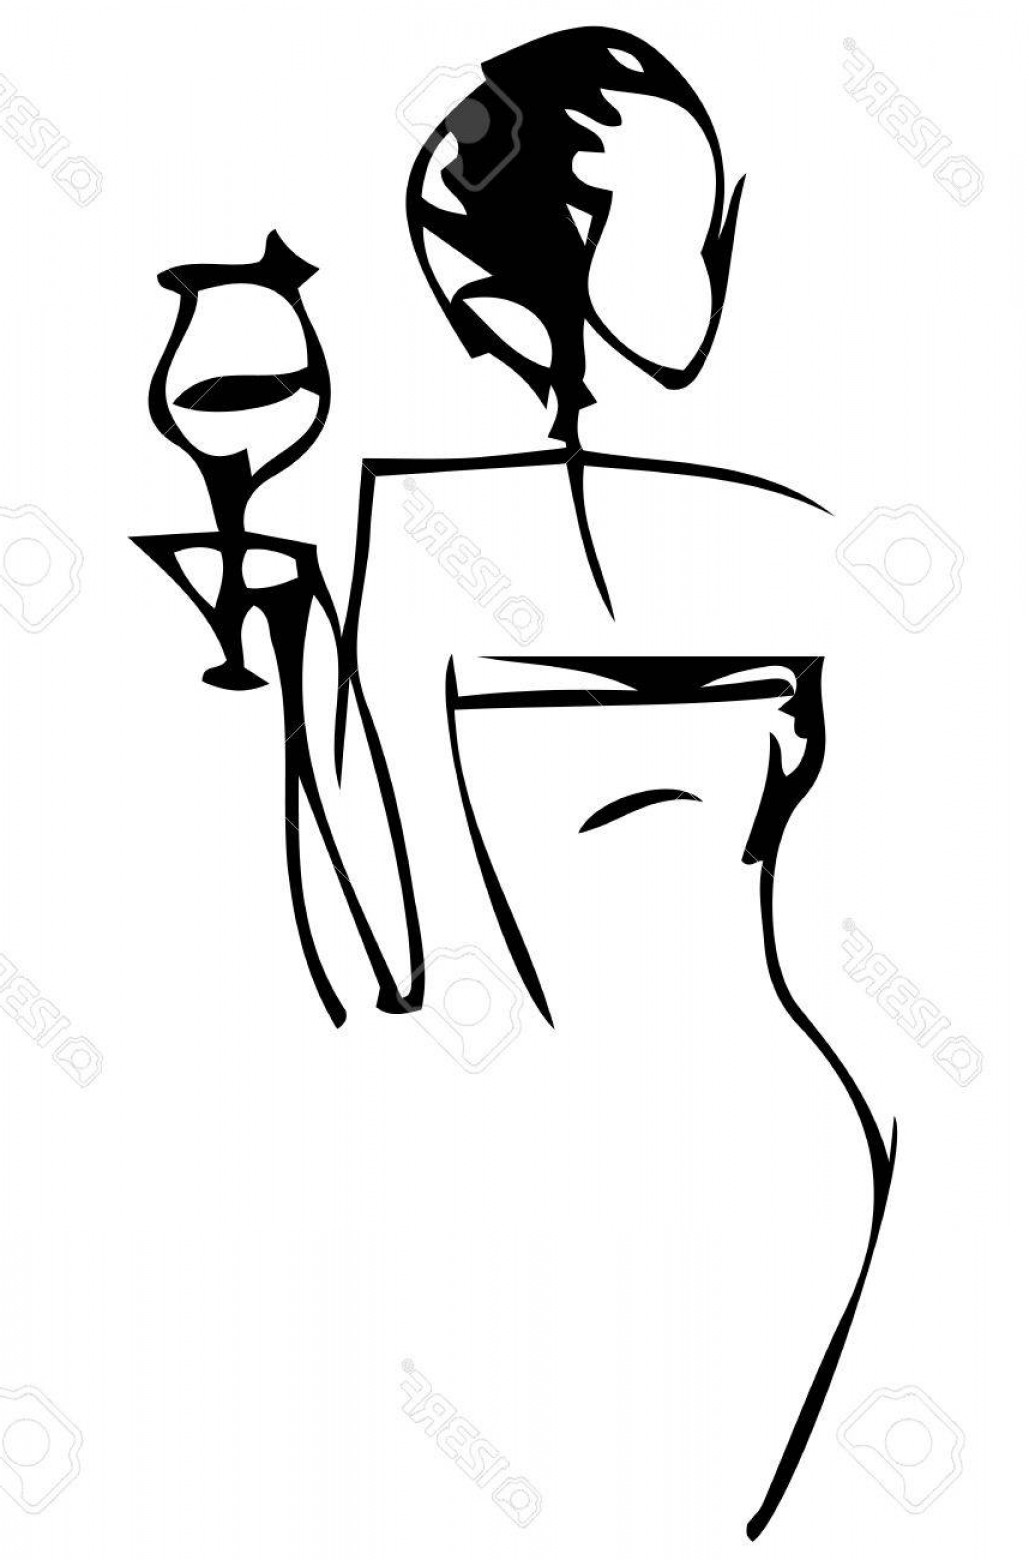 Elegant Woman Silhouette Vector: Photostock Vector Black And White Silhouette Vector Sketch Of An Elegant Woman With A Glass